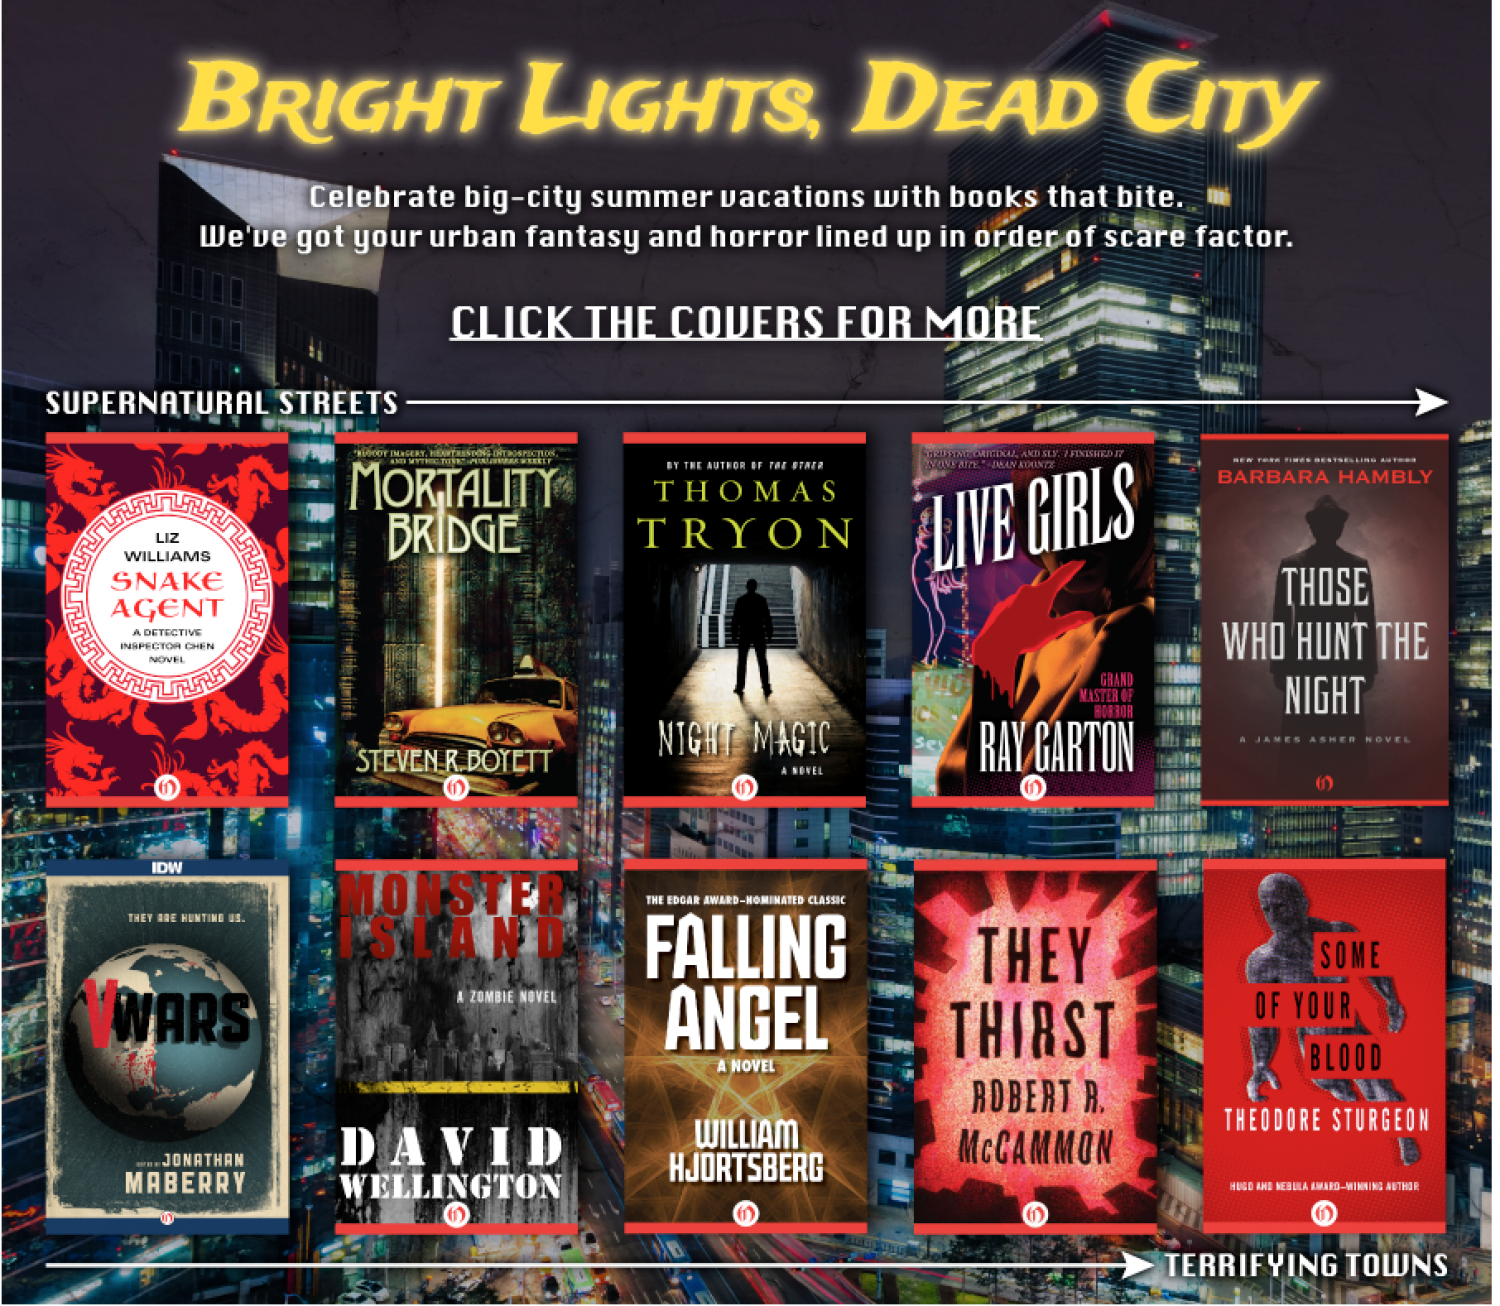 Bright Lights, Dead City Infographic